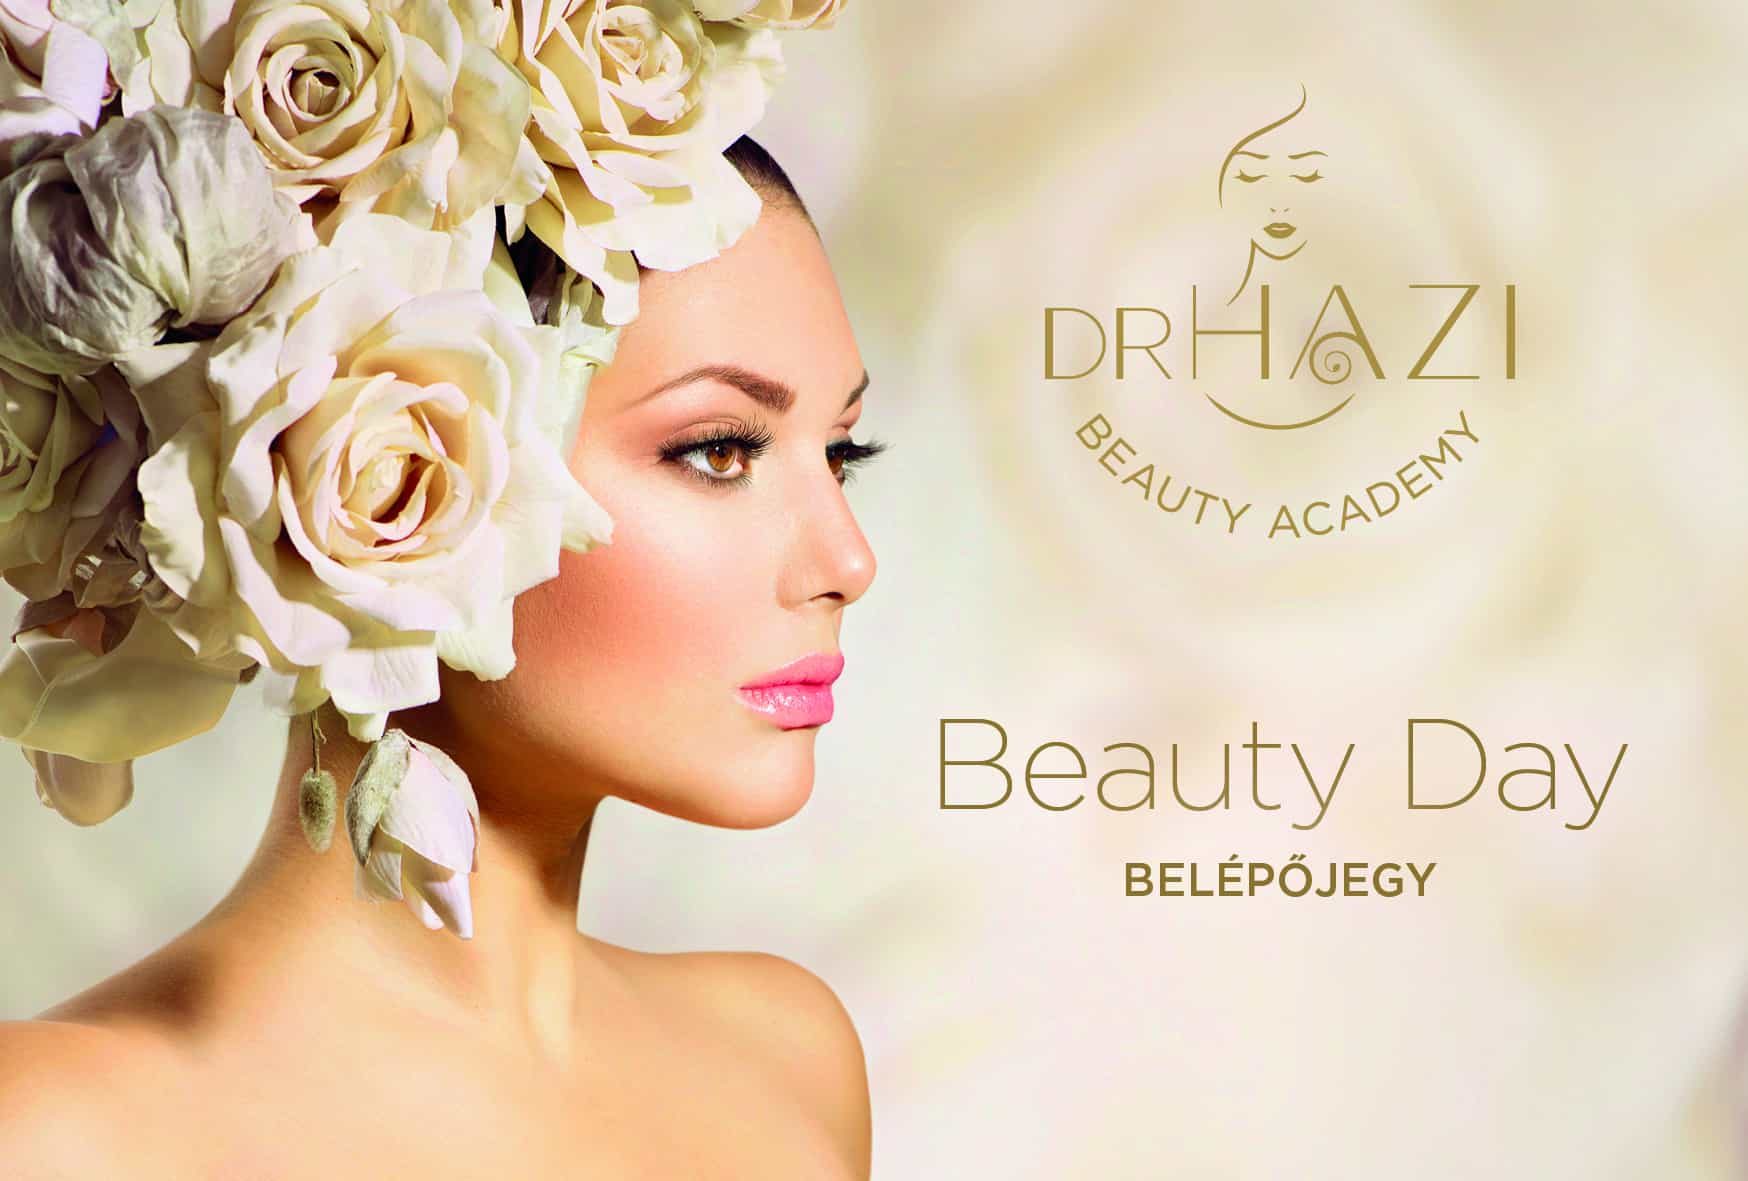 AGELESS BEAUTY SKIN REJUVENATION DRHAZI Beauty Nap 2020. 07. 18. szombat